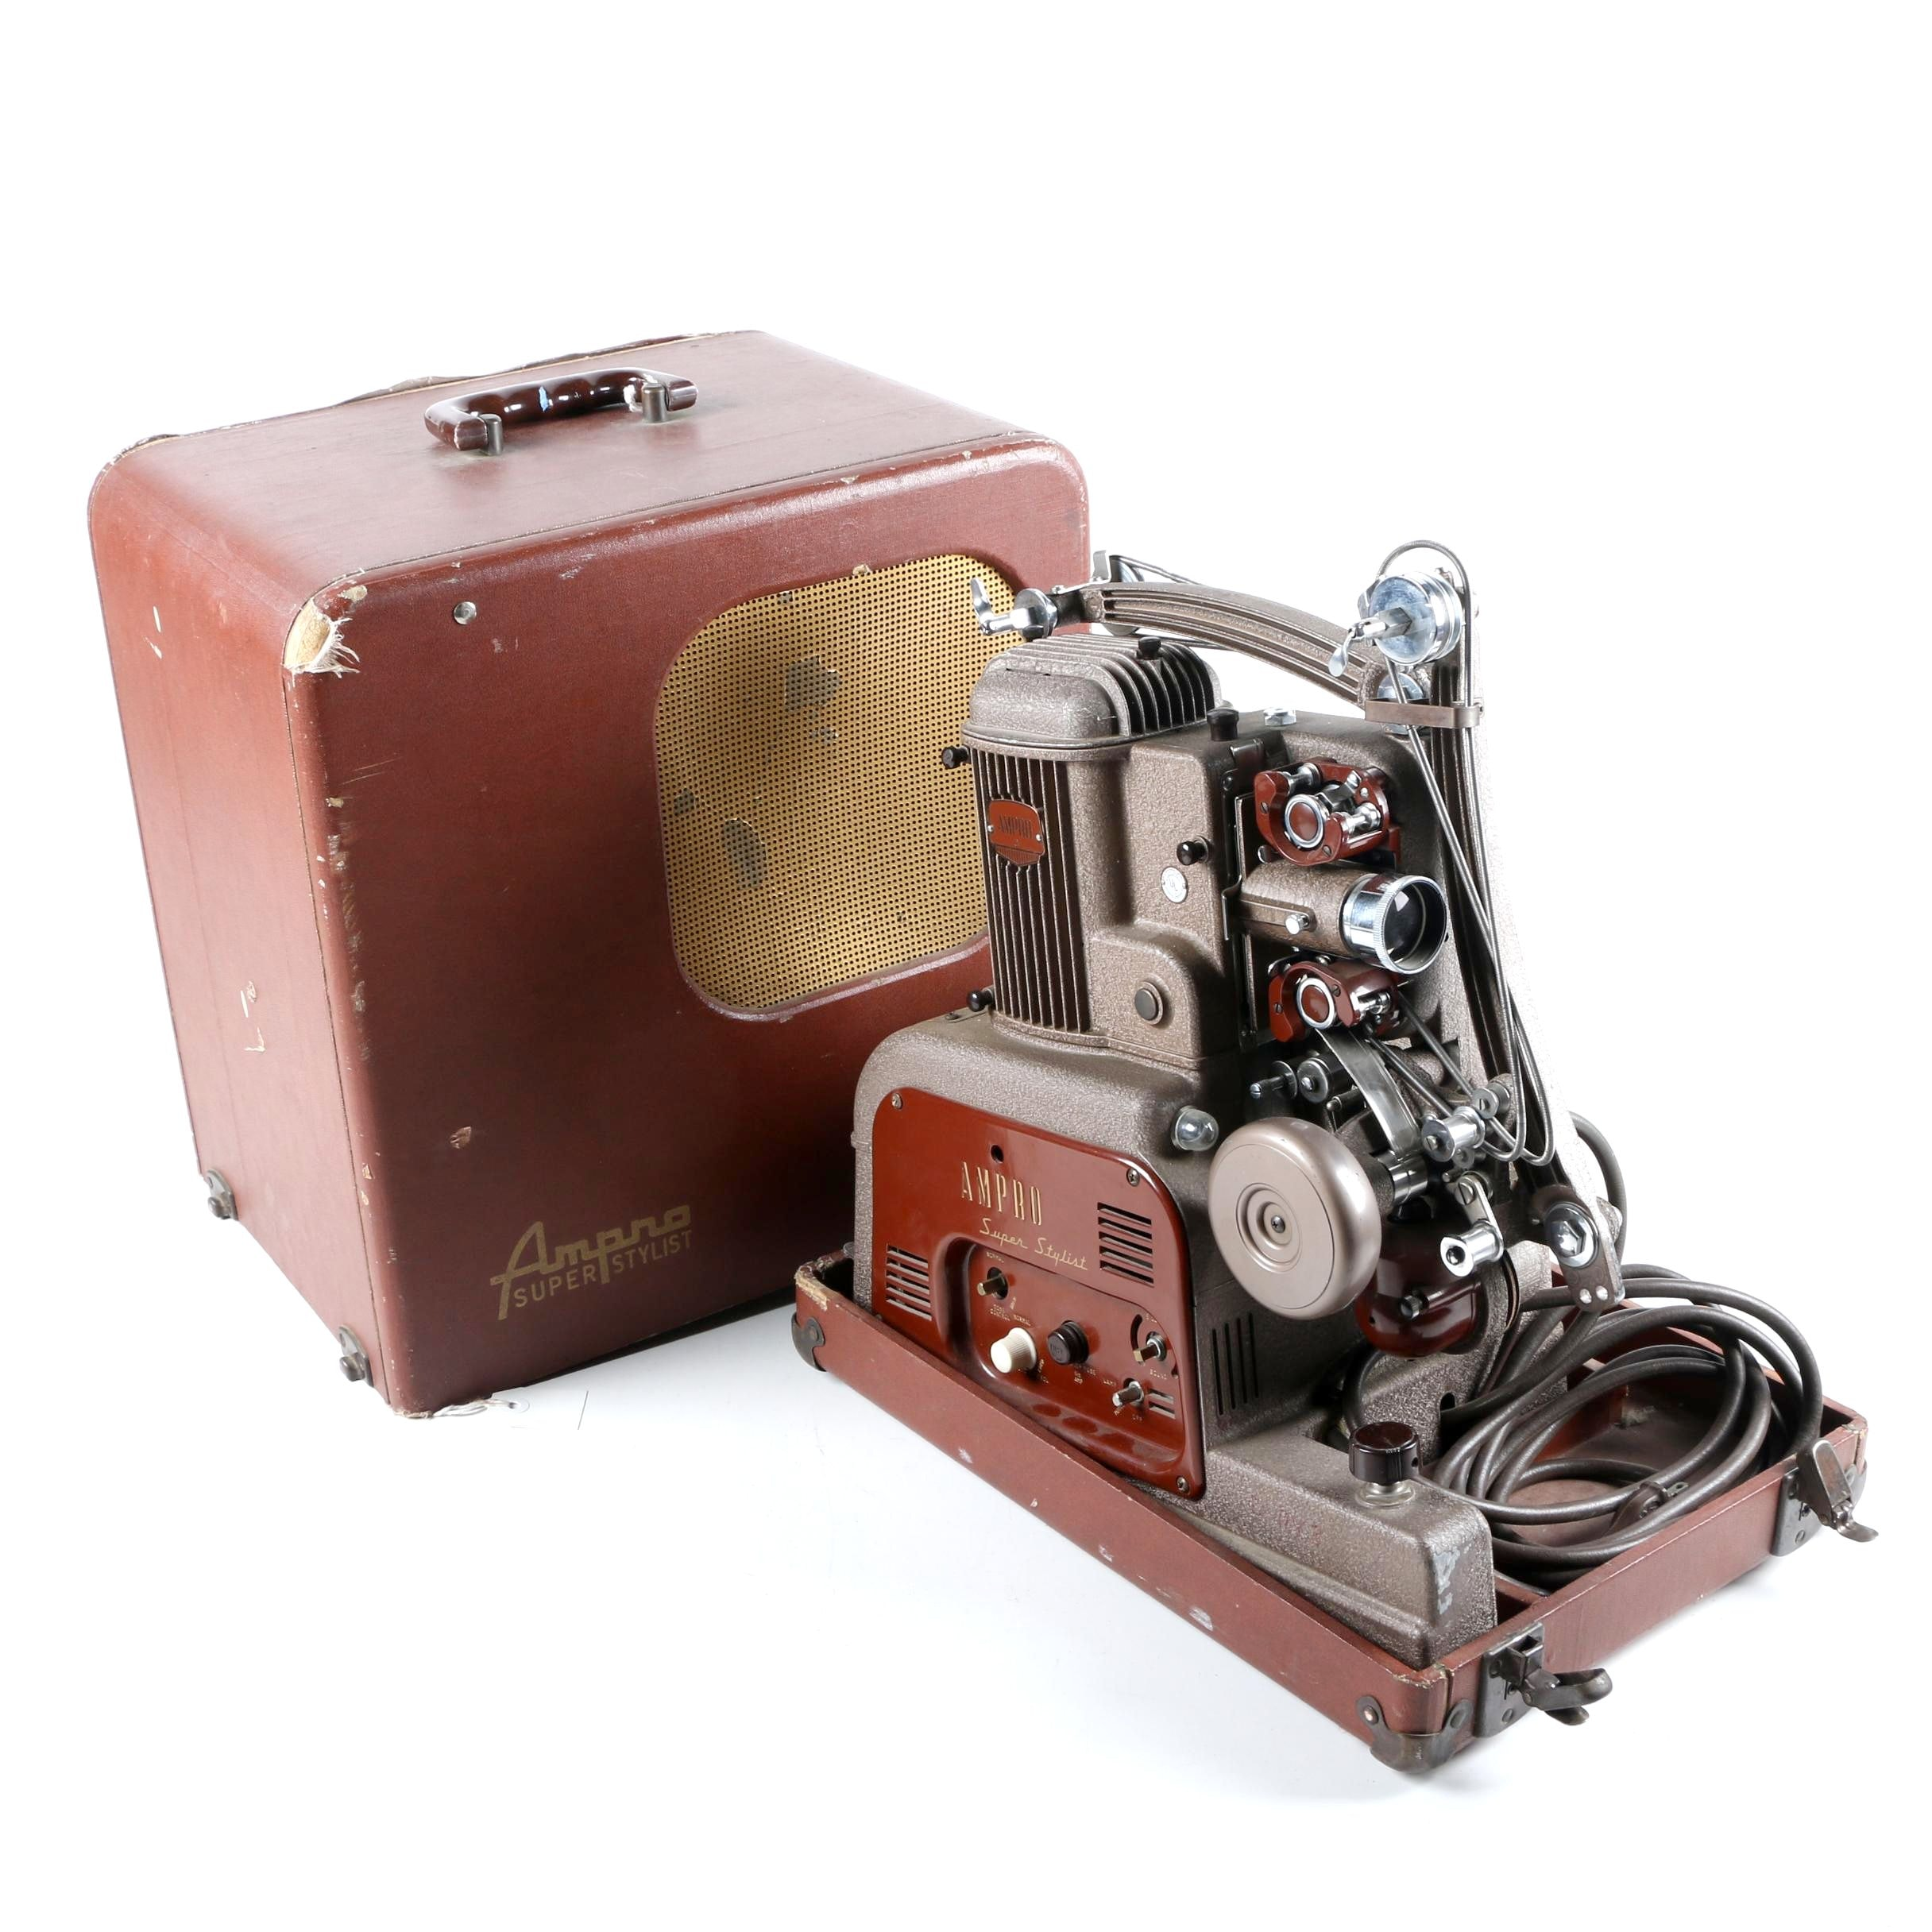 16MM Ampro Super Stylist Projector